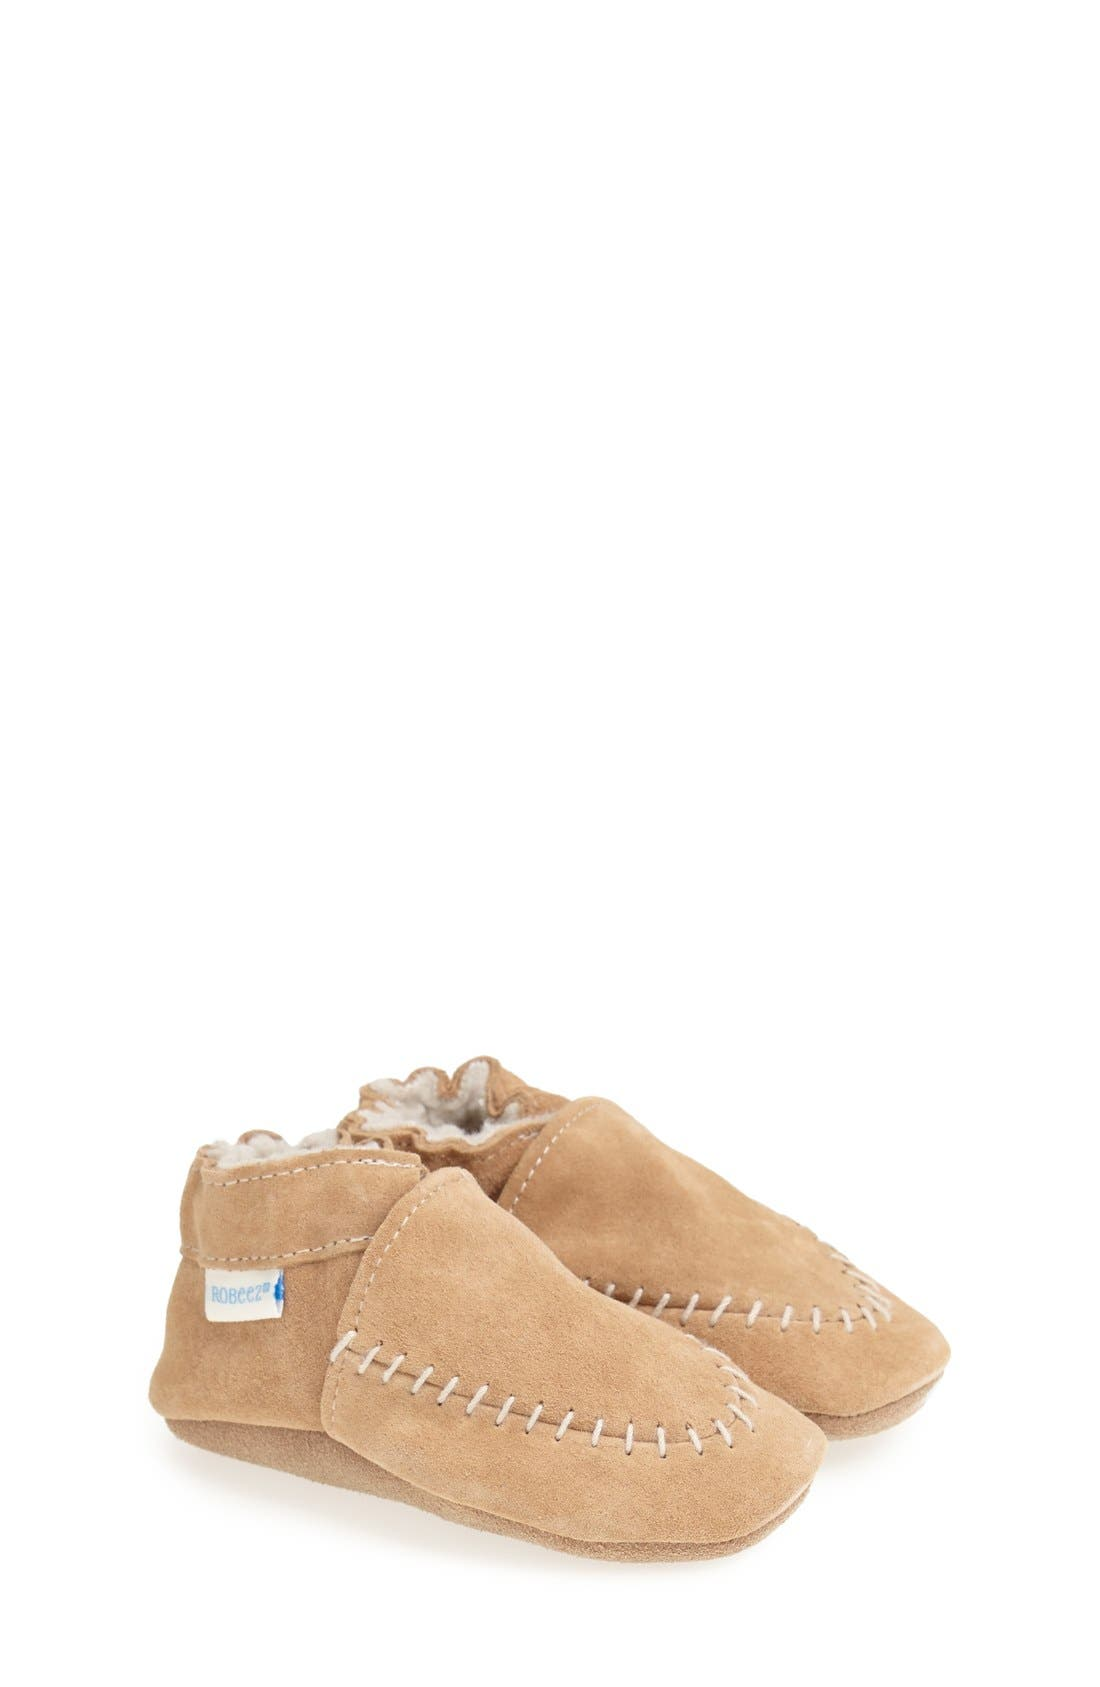 Cozy Moccasin Crib Shoe,                             Main thumbnail 1, color,                             Taupe